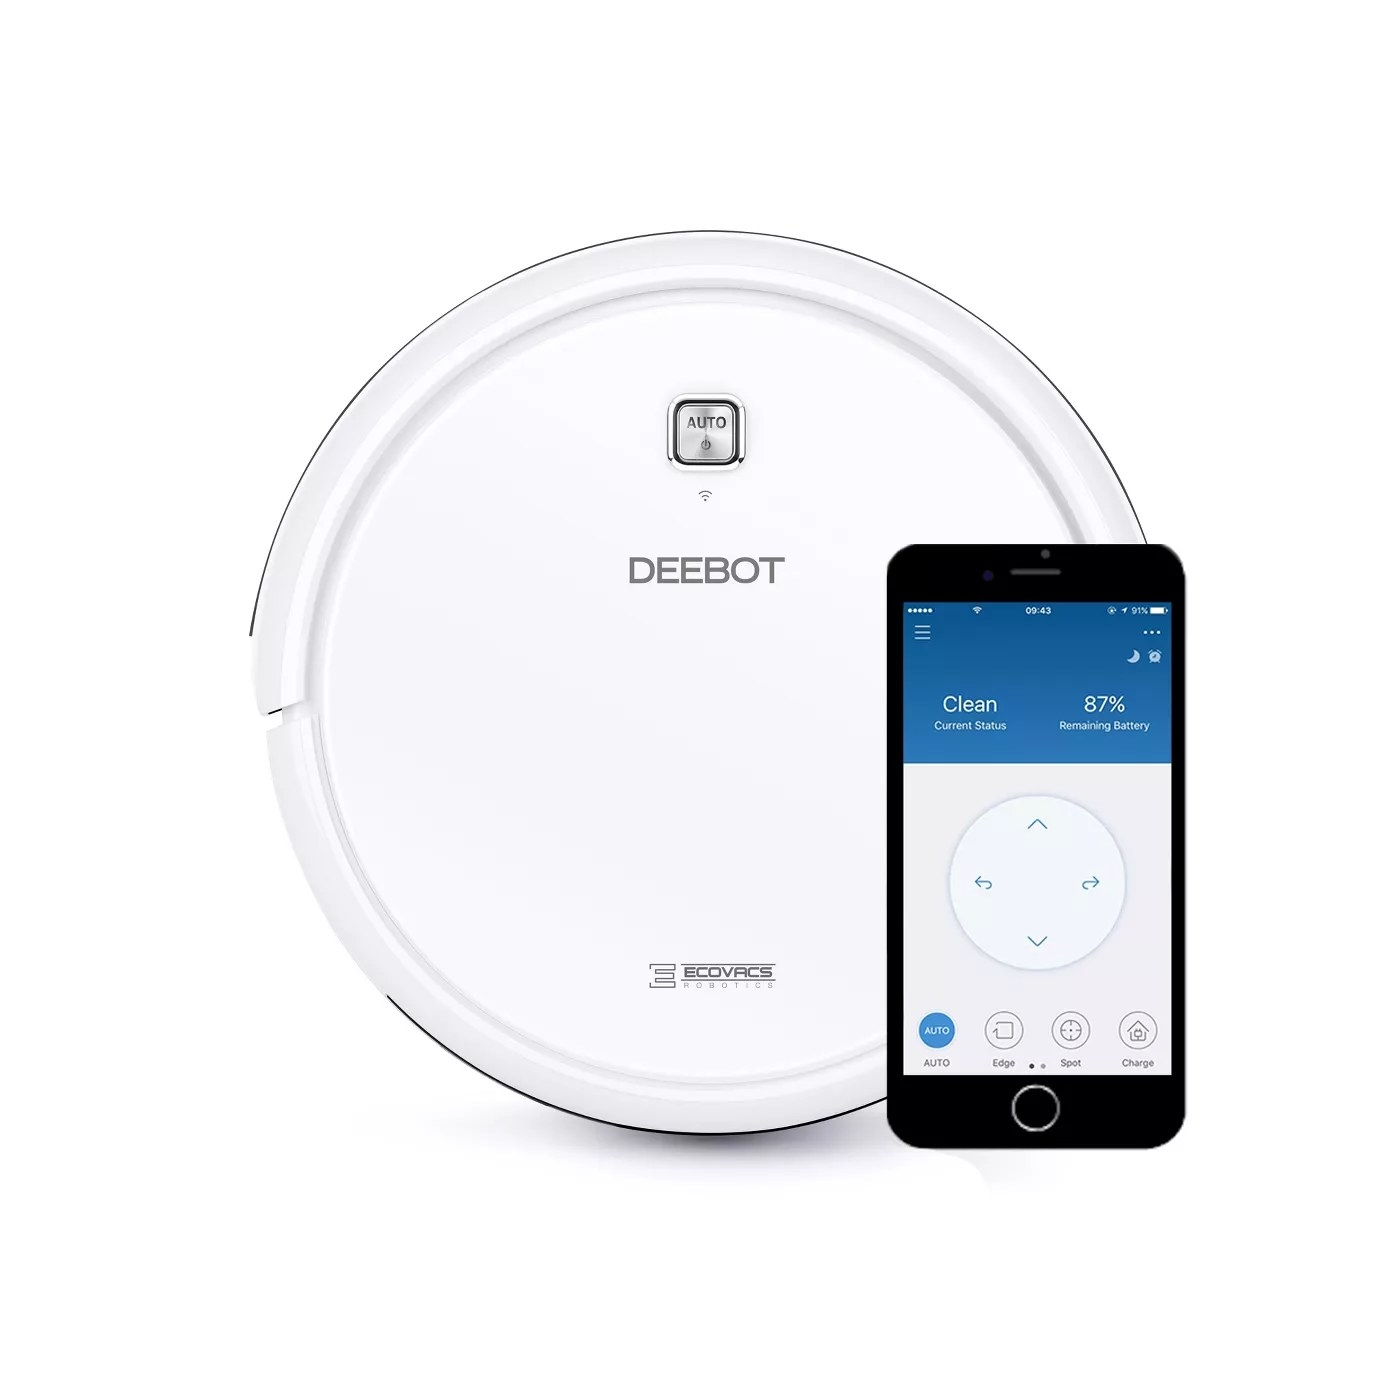 The robot vacuum with the app